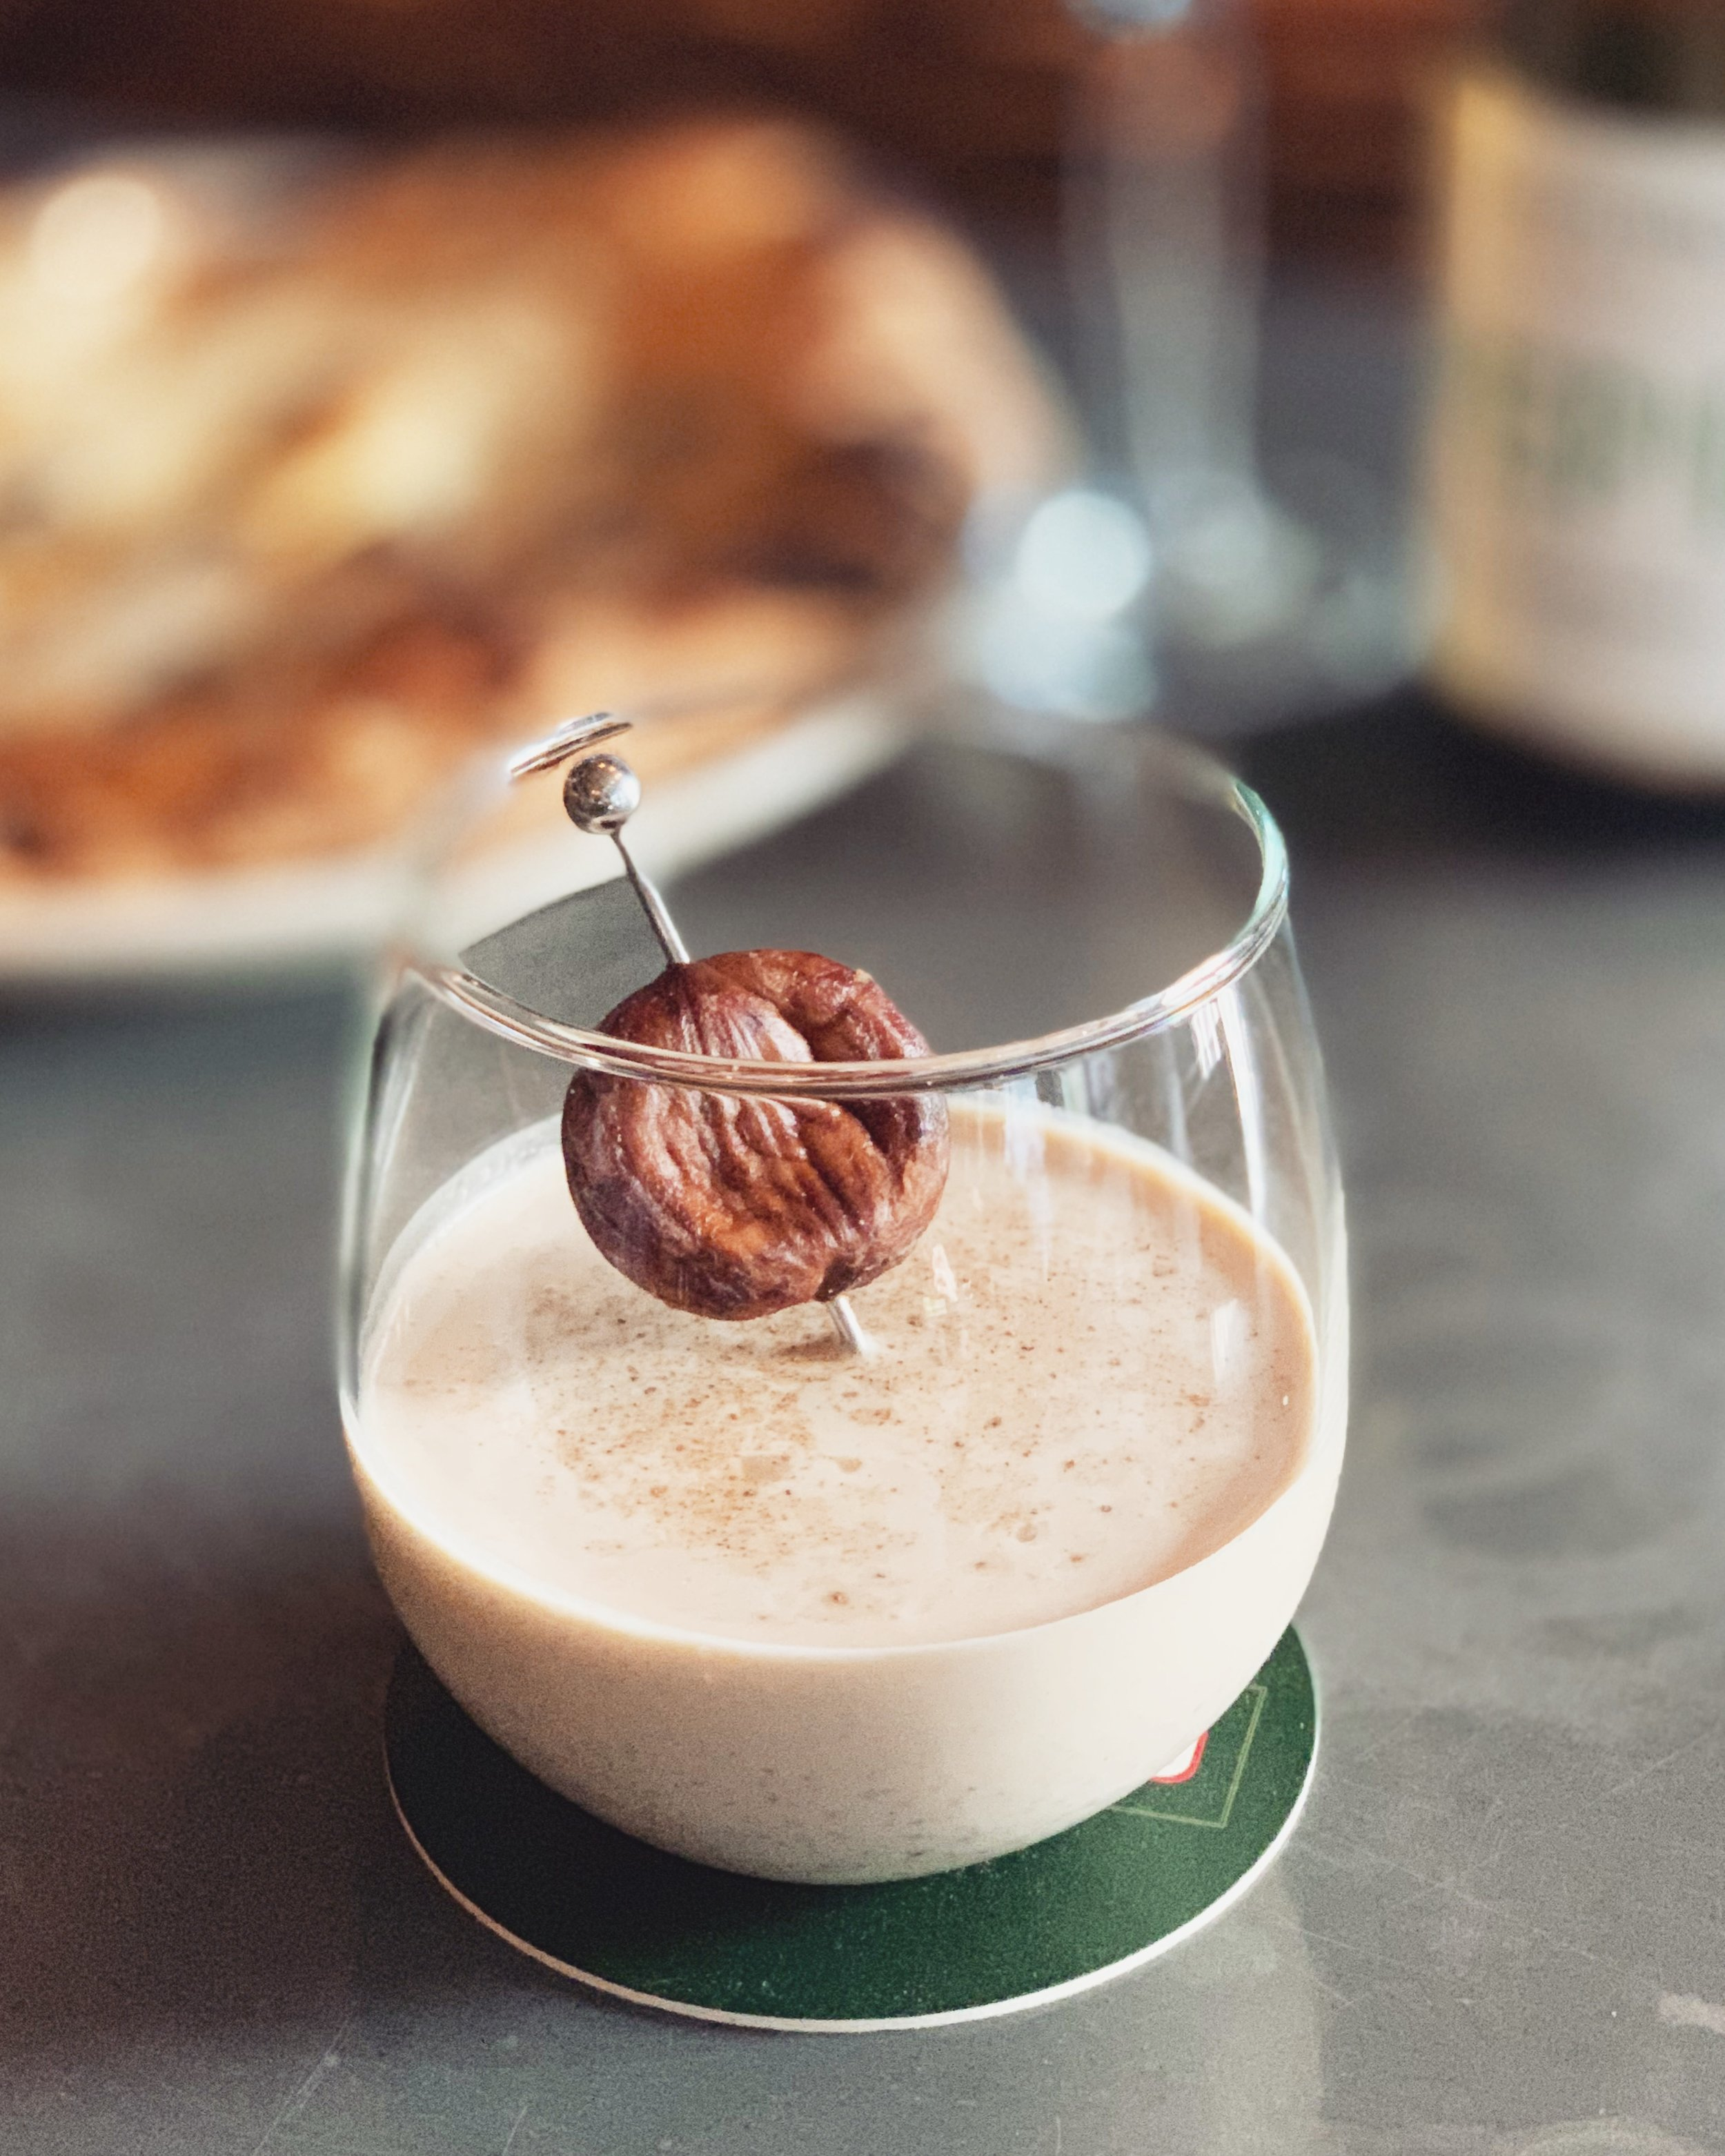 19-24 June - Our specials have a common theme this week: chestnut 🌰. ~Homemade sugared chestnuts, Hennessy, Glenlivet, Baileys, cream and nutmeg.~This cocktail is the paradigm of a winter cocktail - which you can also have as your liquid dessert - 🤫.